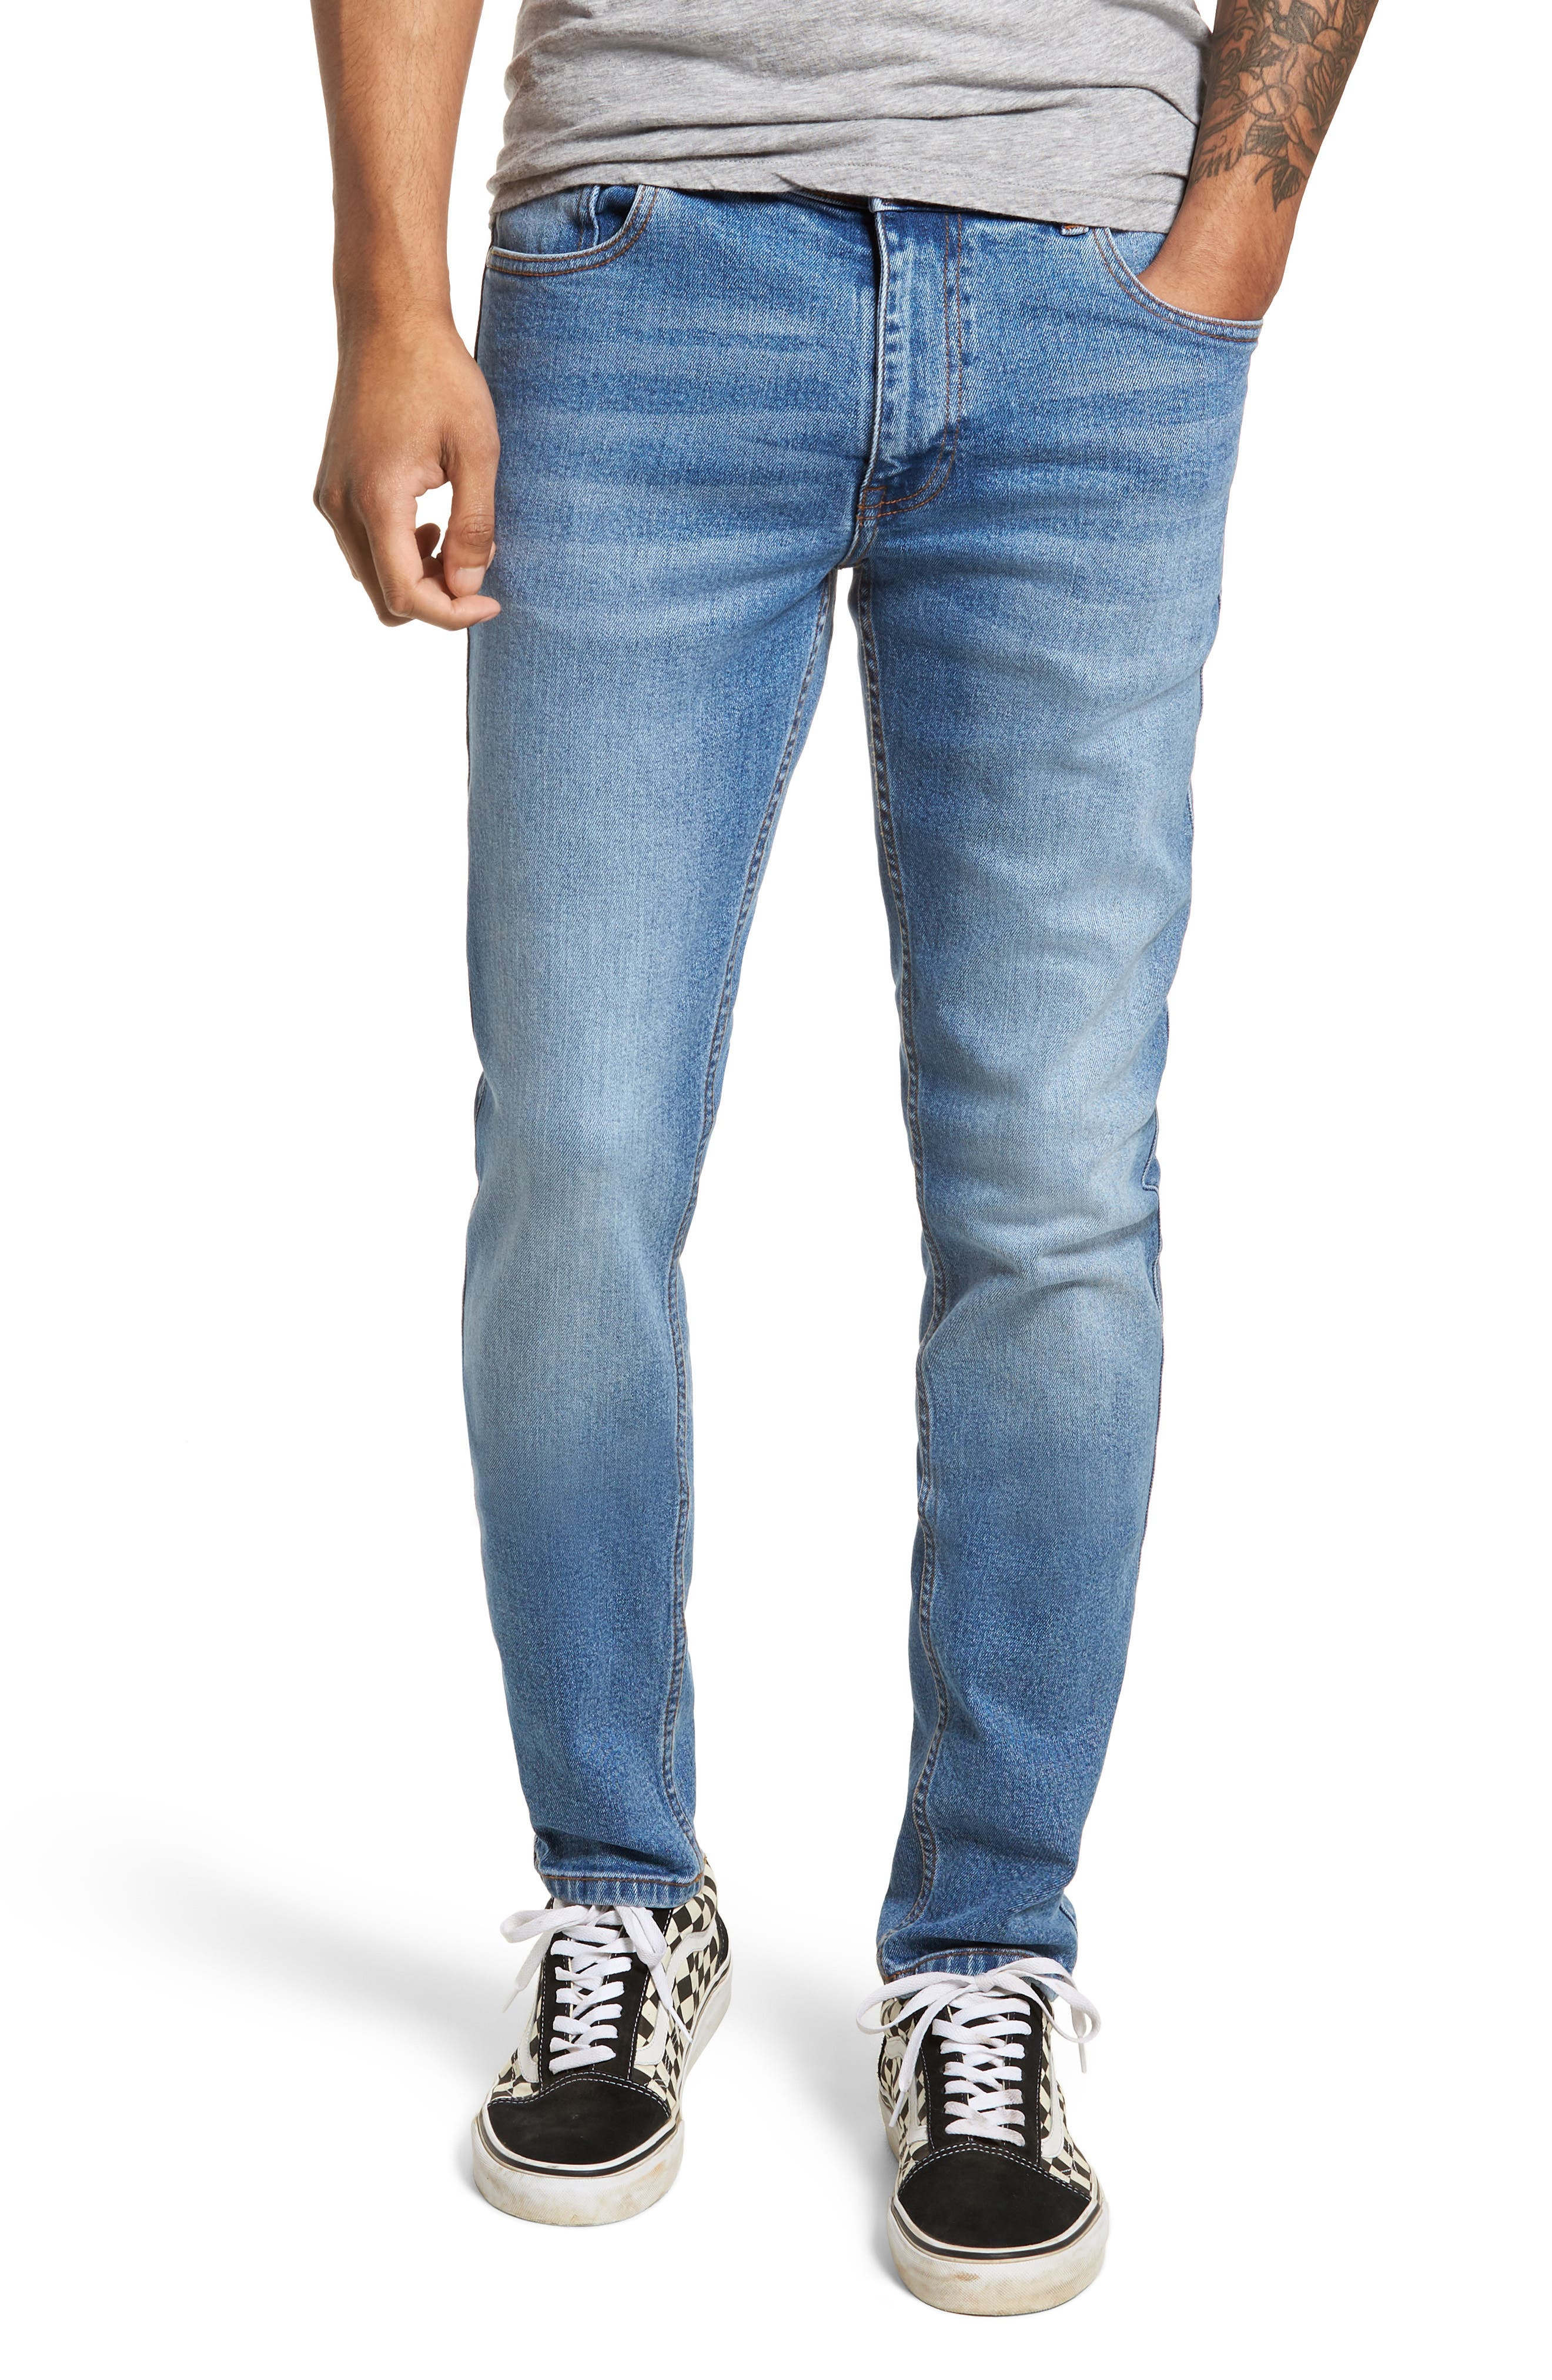 Clark Slim Straight Leg Jeans,                             Main thumbnail 1, color,                             402